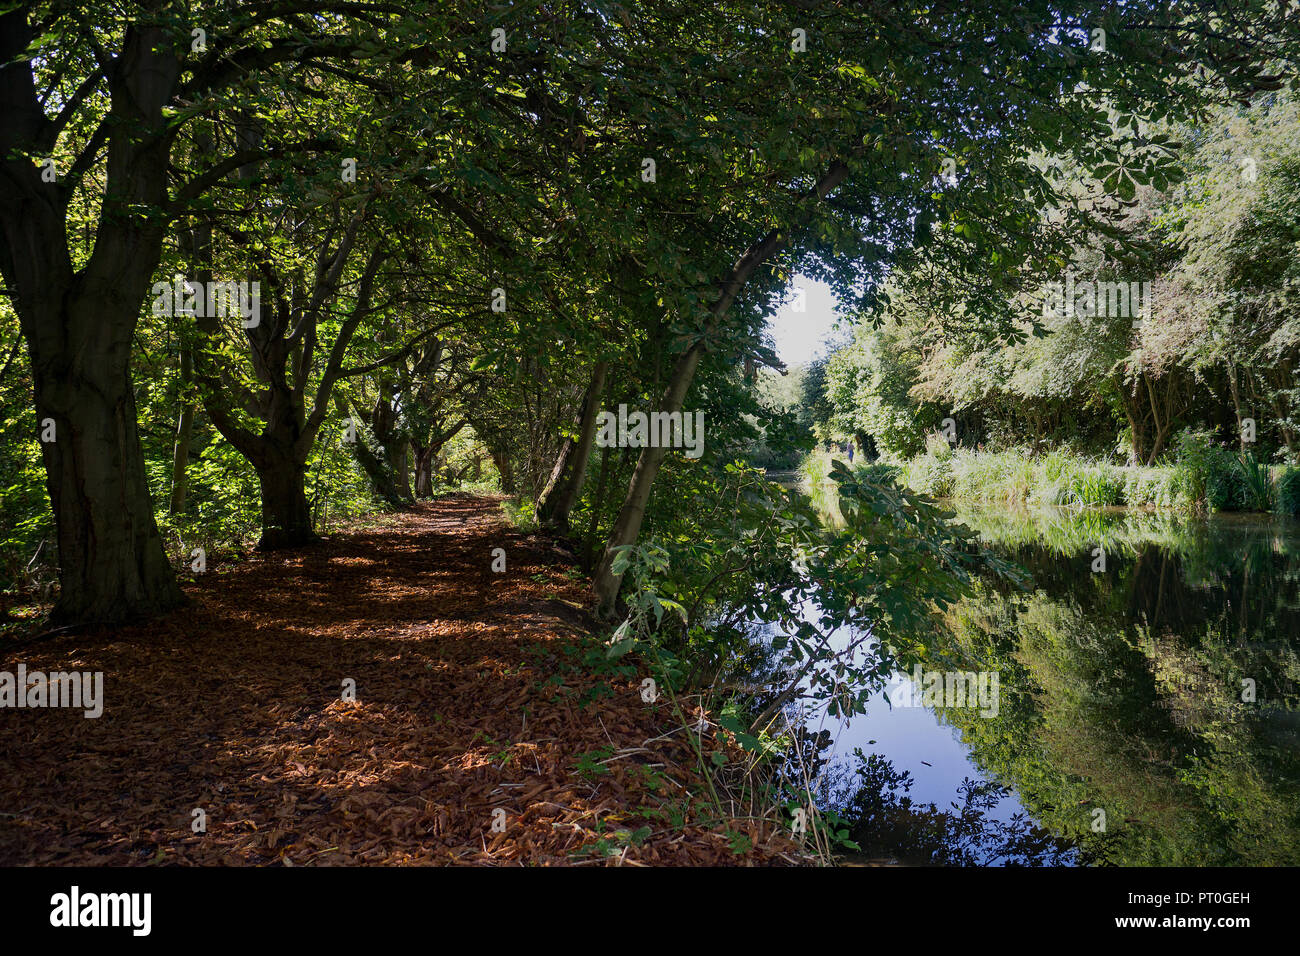 The River Stort in Harlow Essex, the tree lined path showing Autumn and the opposite bank with the Towpath remains in full summer mode. - Stock Image